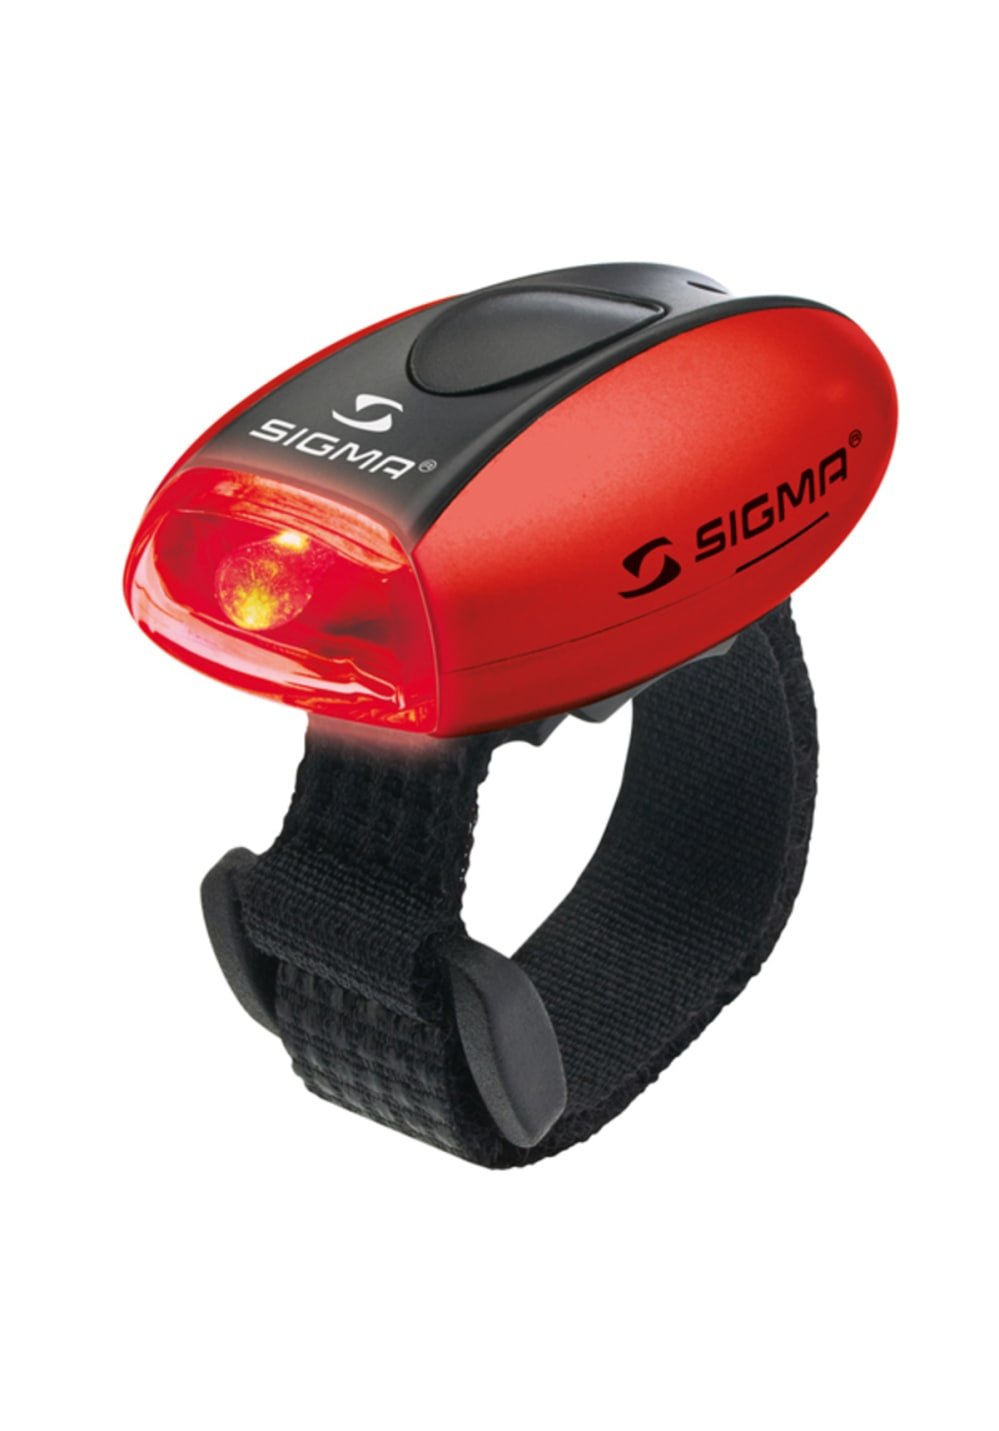 Sigma led lampe sigma micro rot mit roter led lighting this product is currently out of stock parisarafo Image collections